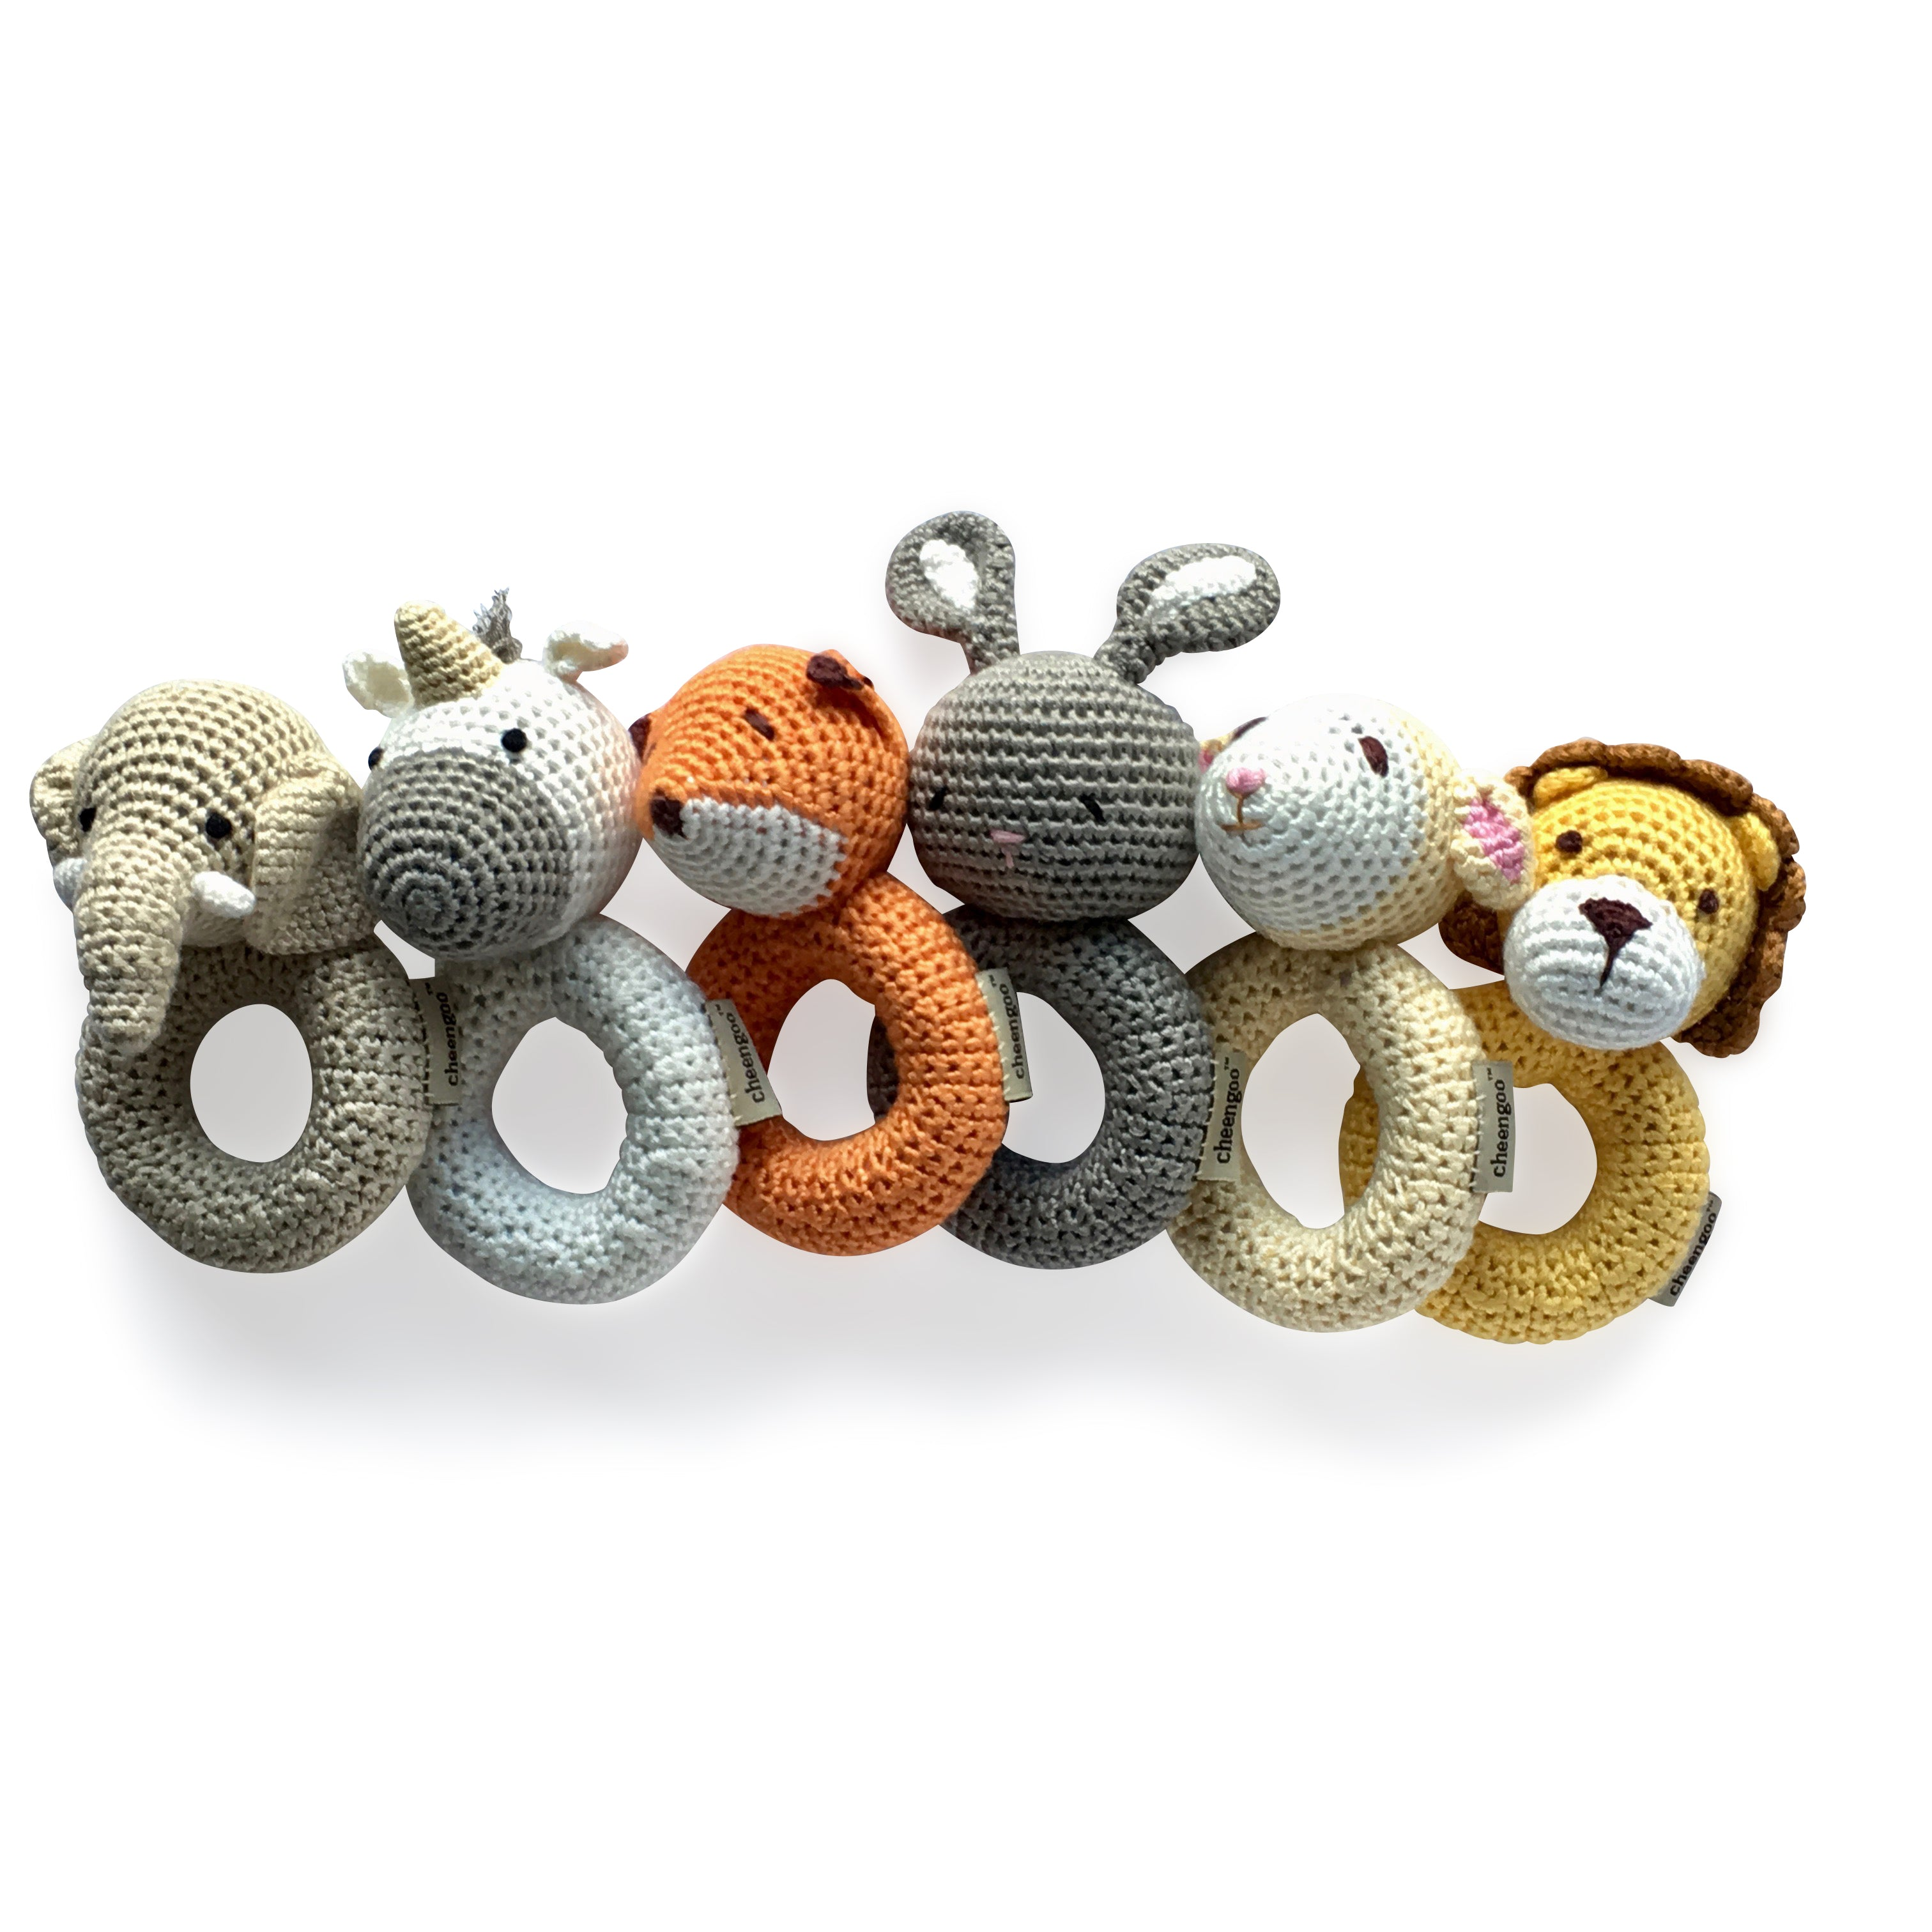 I AM BCO conscious Lifestyle Crotchet Rattles Cheengoo Ethical and eco friendly Bamboo